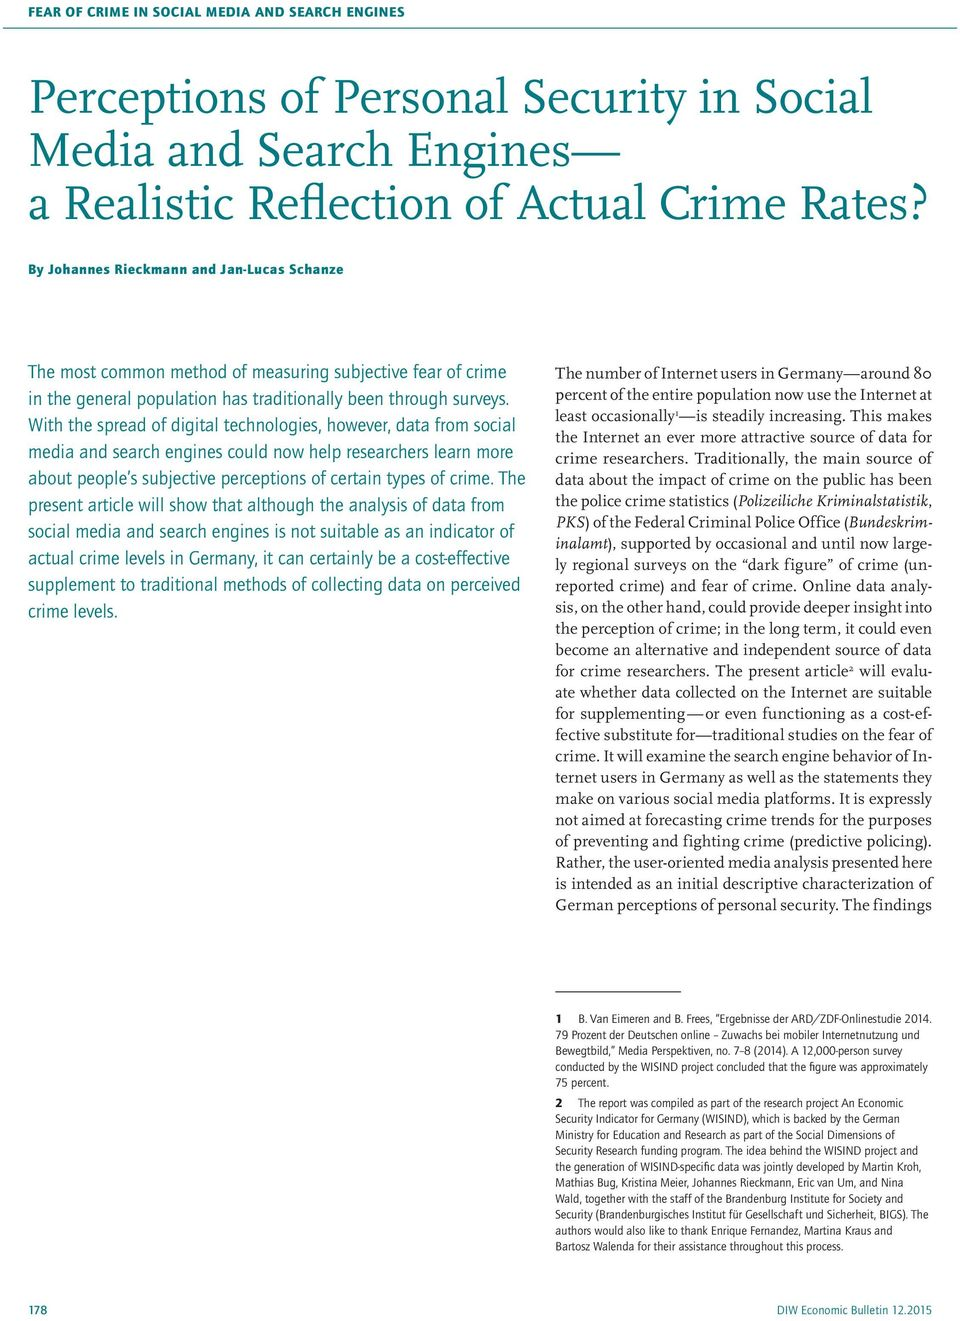 With the spread of digital technologies, however, data from social media and search engines could now help researchers learn more about people s subjective perceptions of certain types of crime.